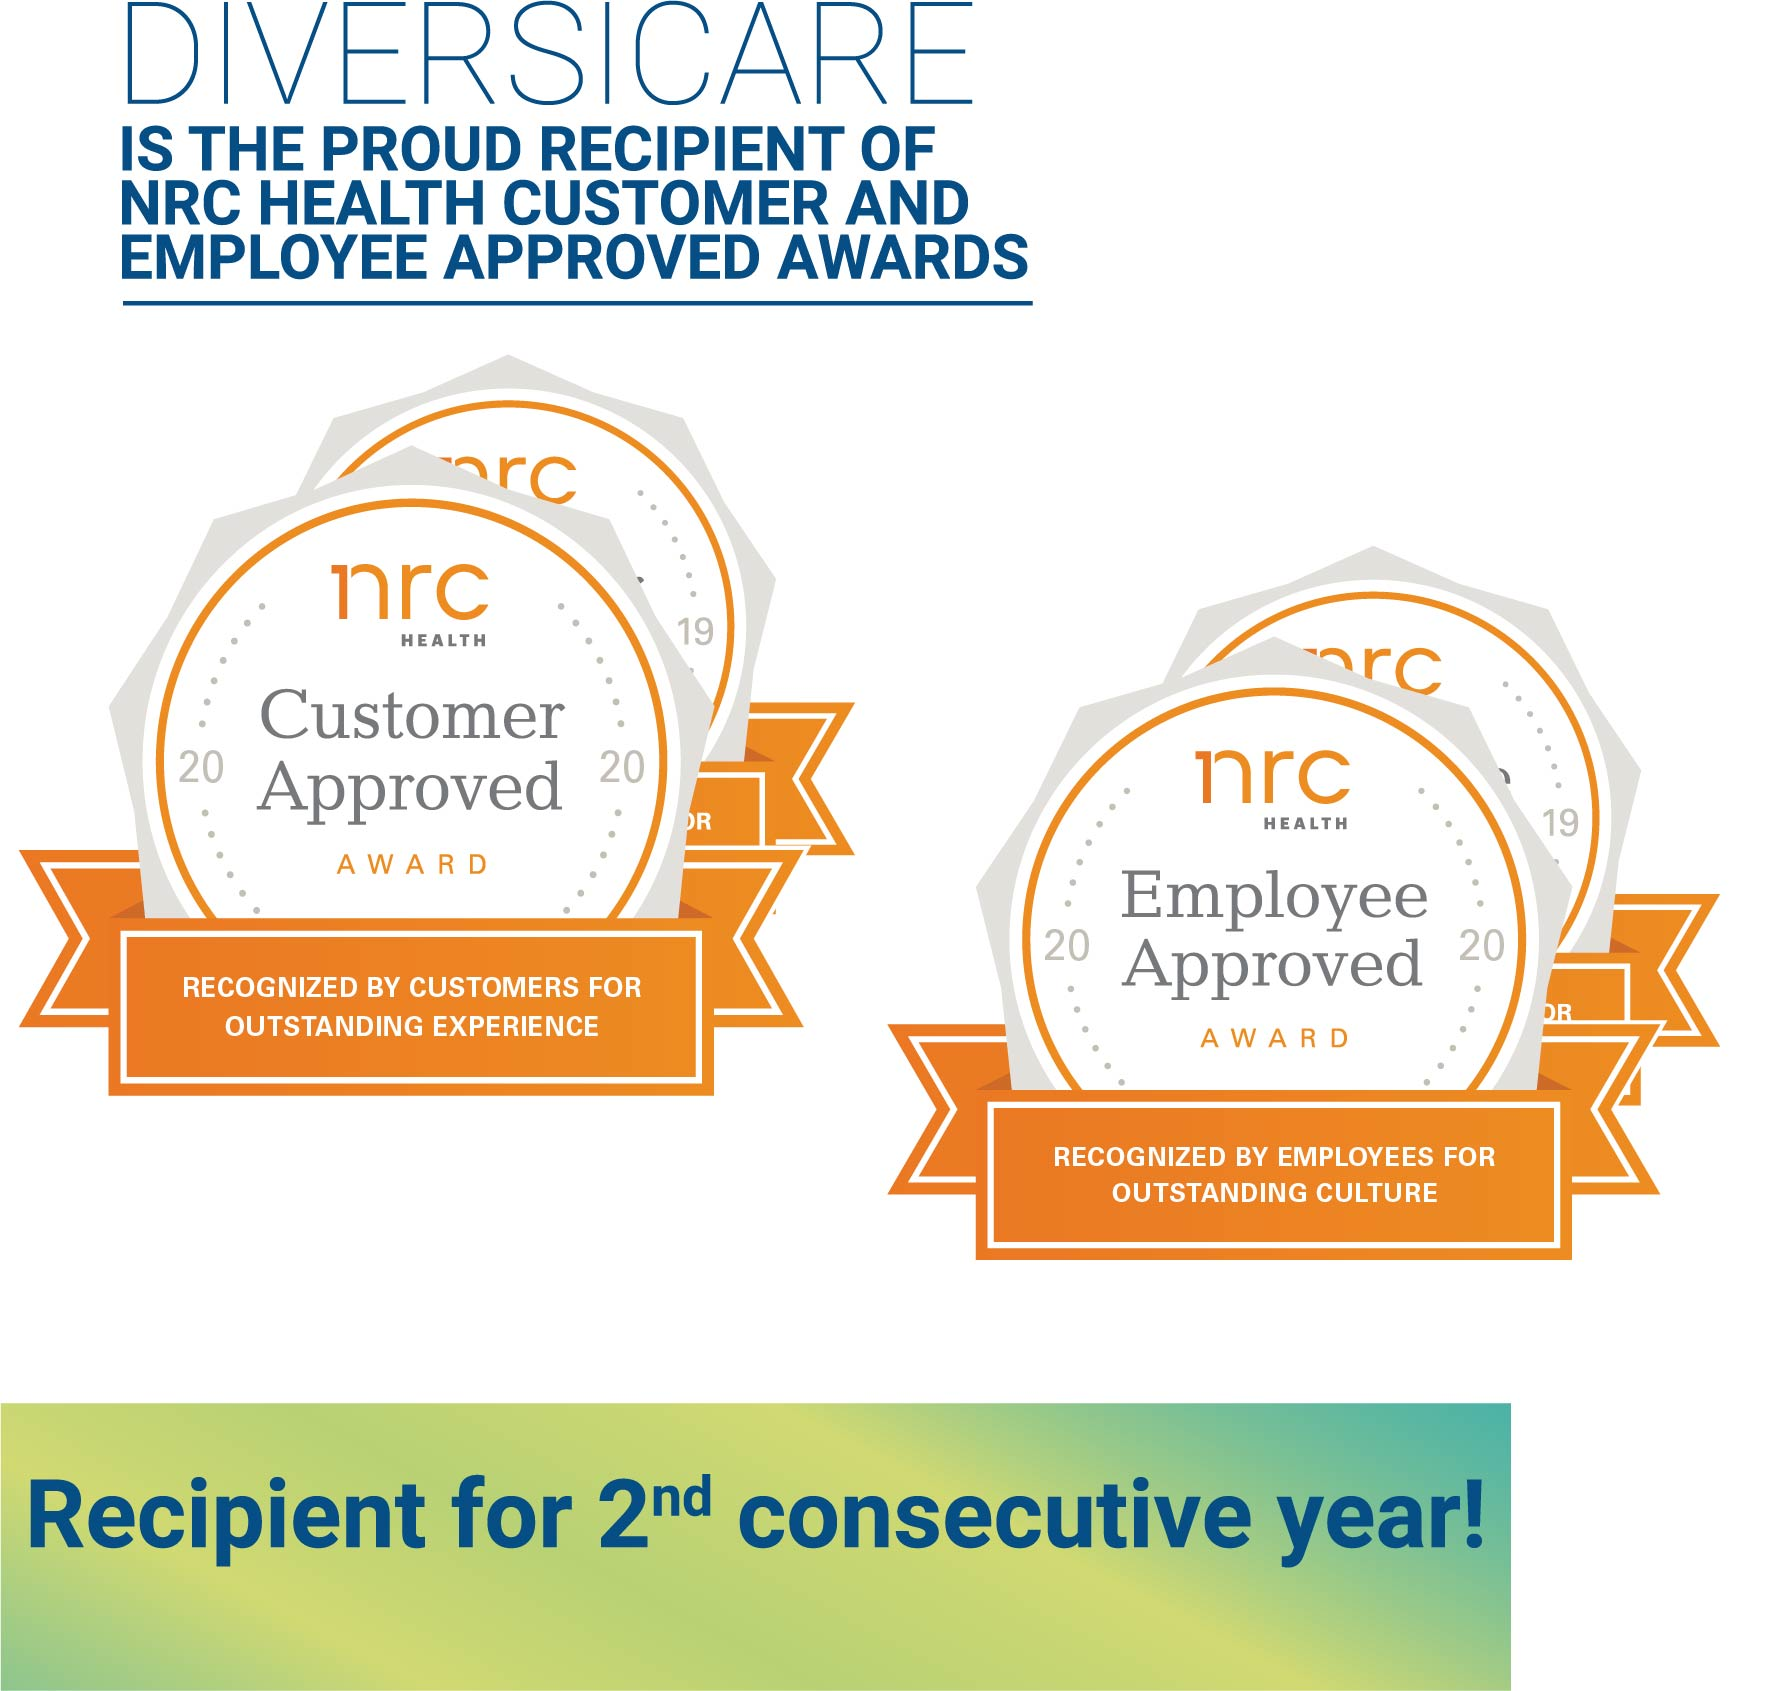 DIVERSICARE AWARDED THE NRC HEALTH CUSTOMER APPROVED AWARD AND EMPLOYEE APPROVED AWARD FOR THE SECOND CONSECUTIVE YEAR